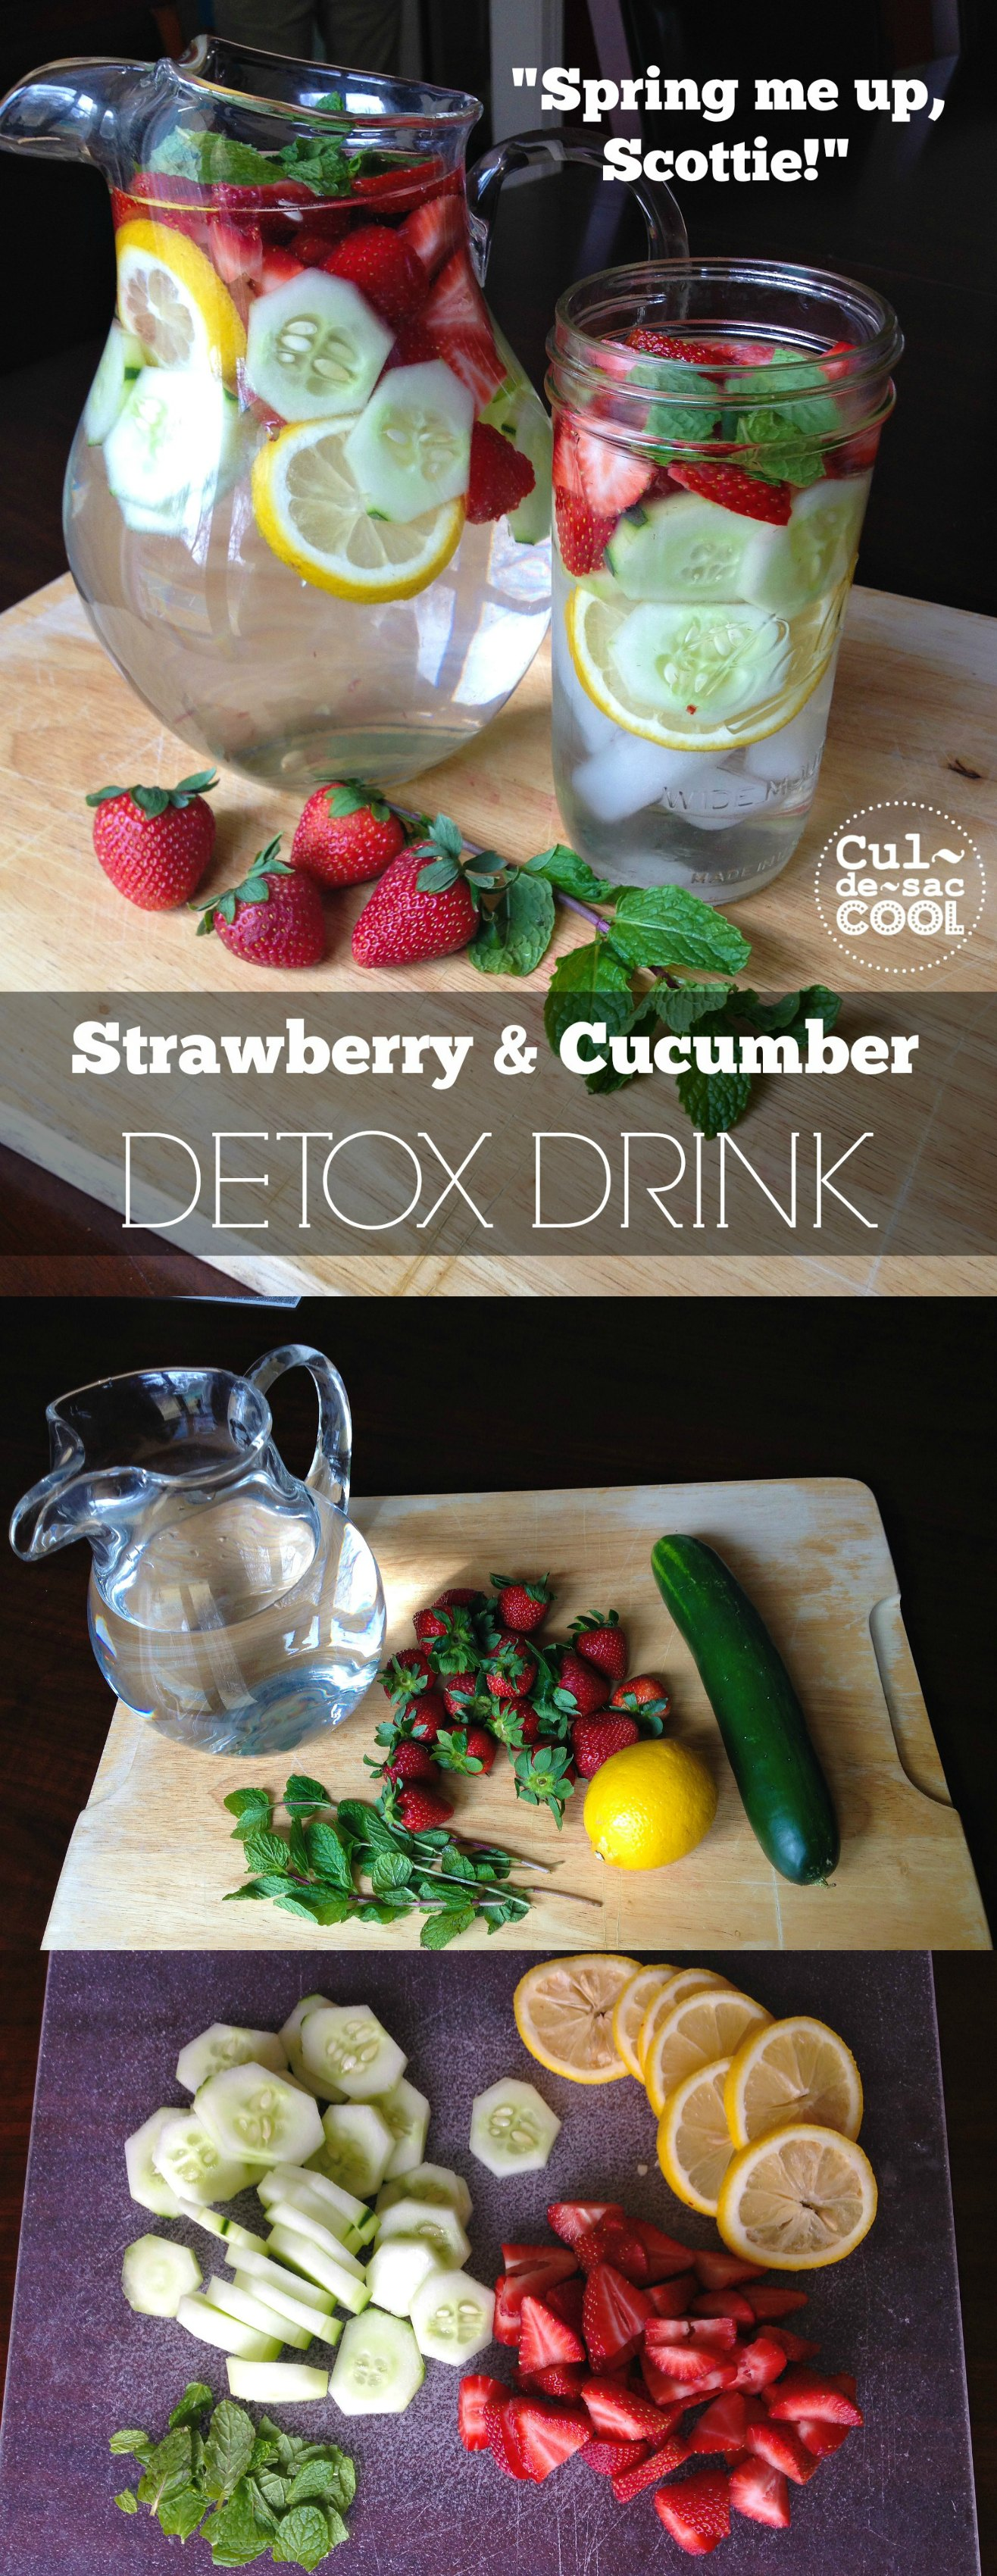 Strawberry and Cucumber Detox Drink Collage